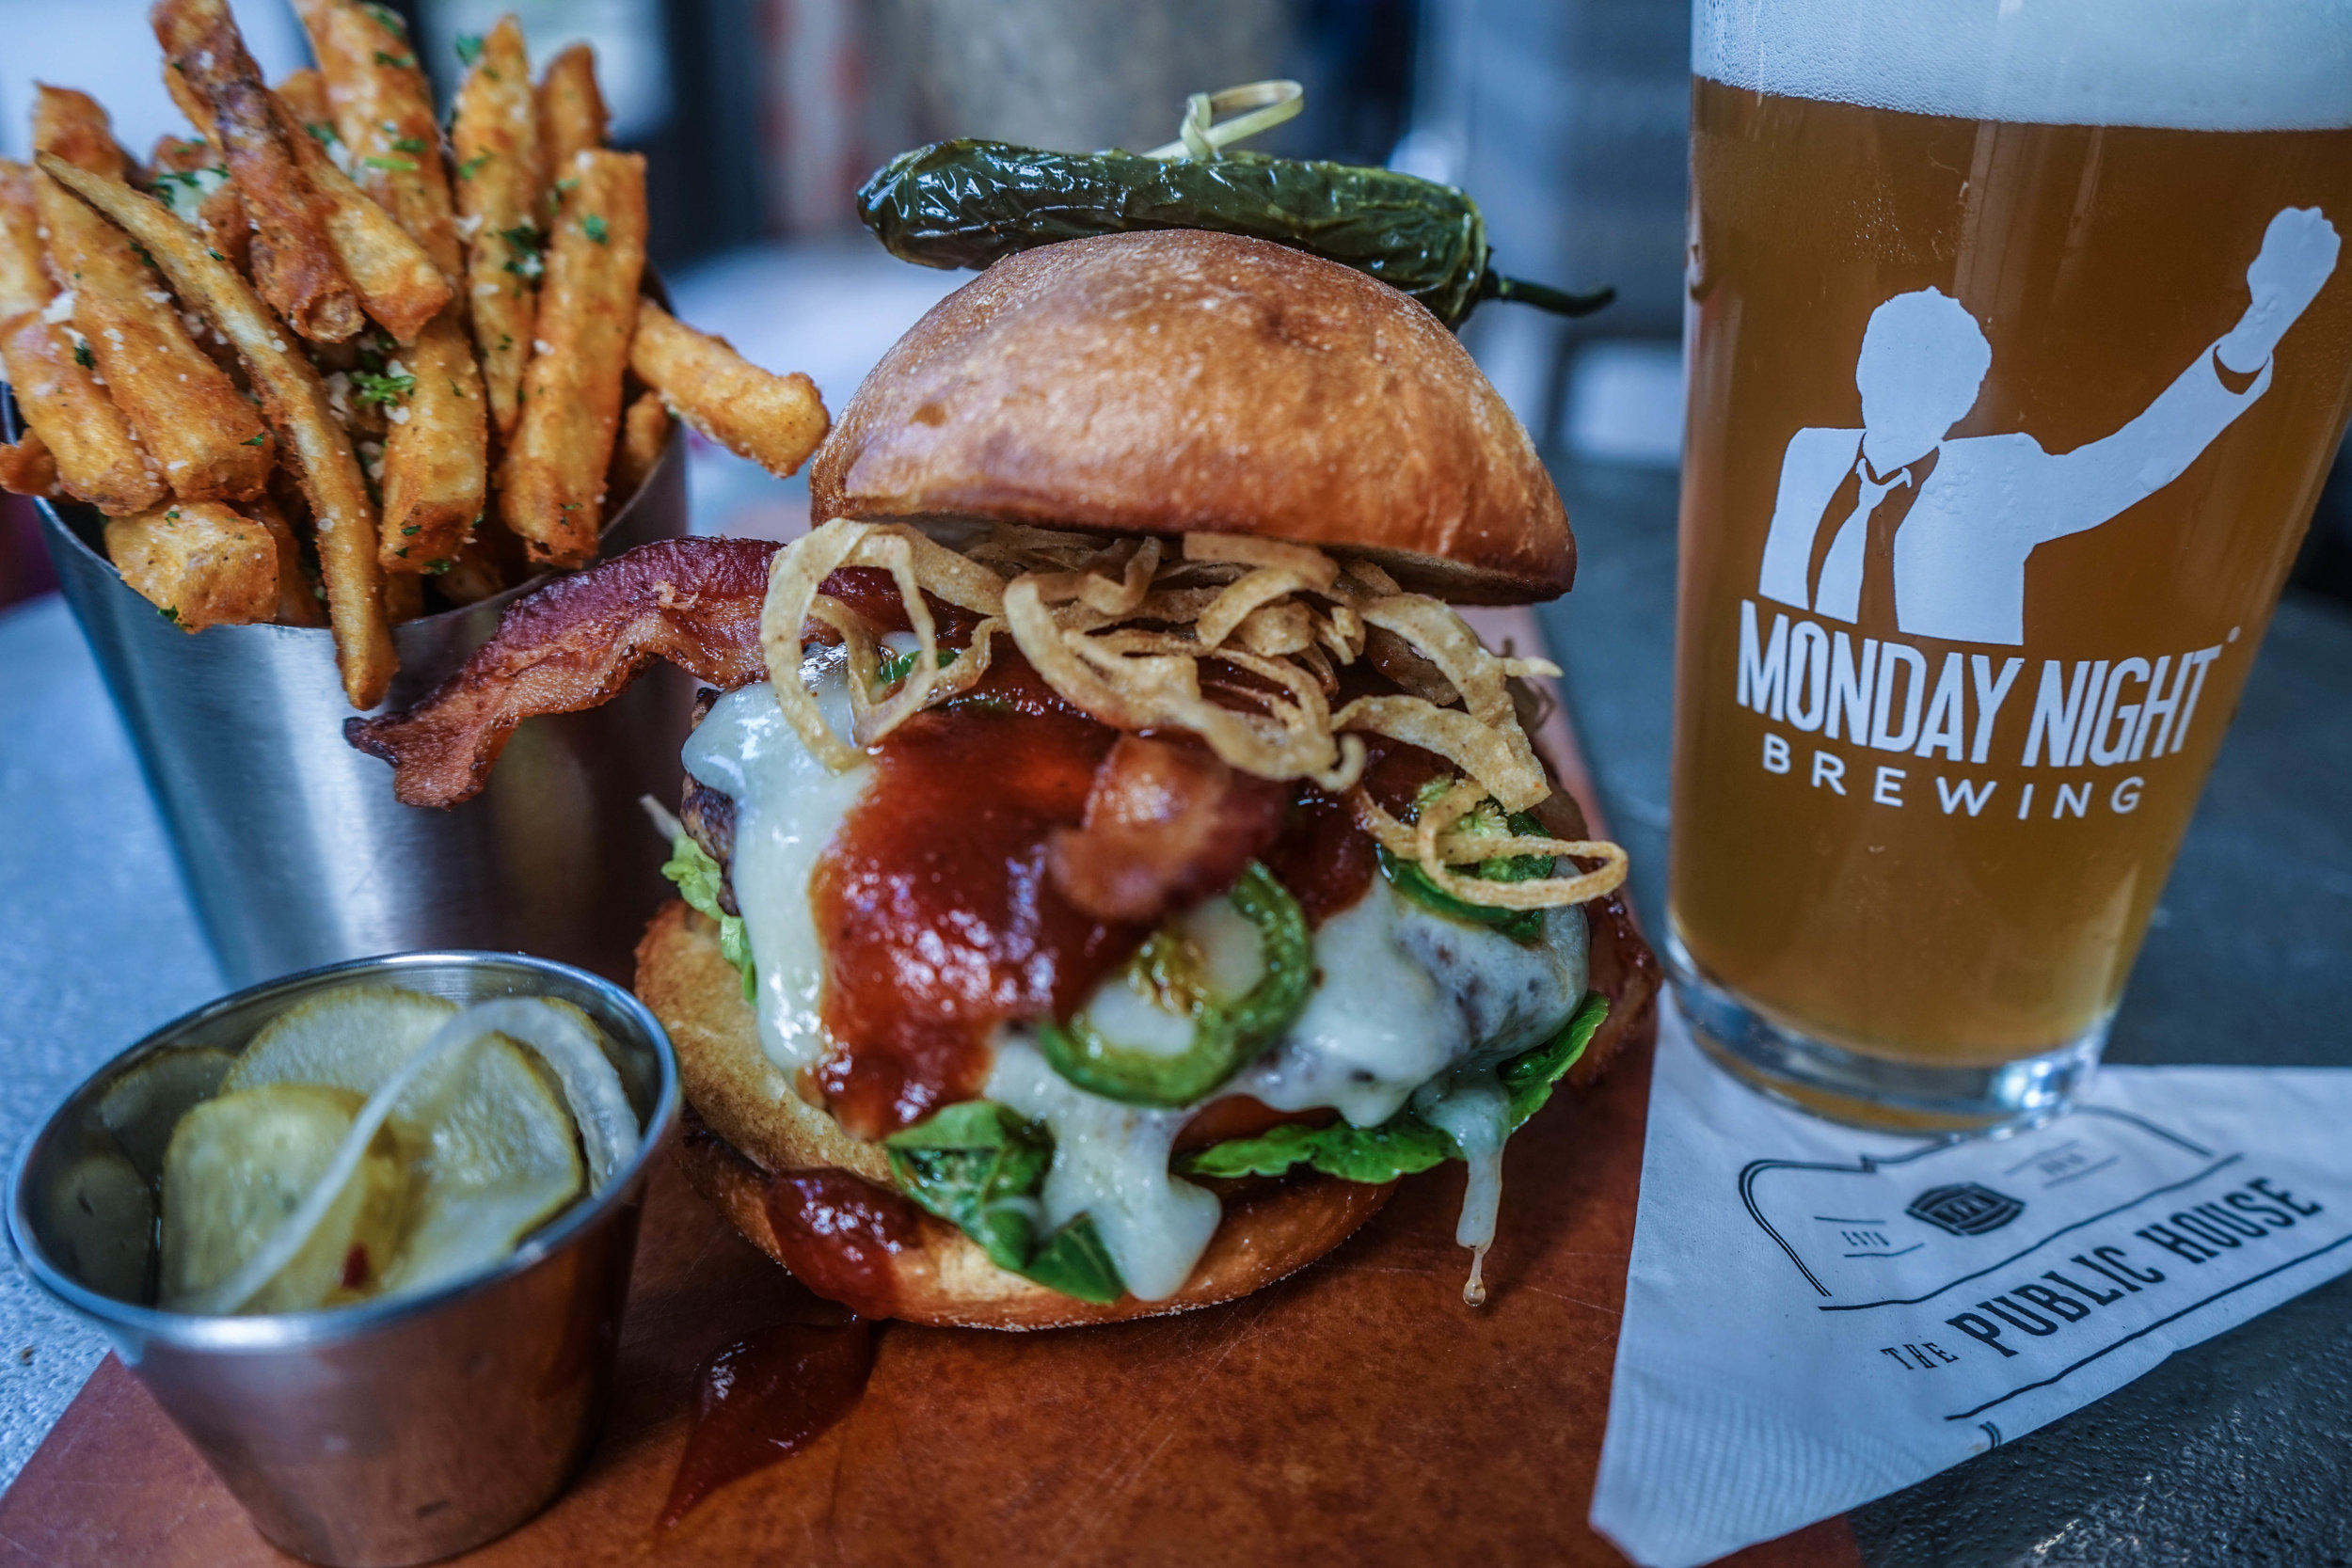 WTH (What The Hamburger), changes weekly.   grilled certified angus beef burger. crispy onion straws. jalapenos. applewood smoked bacon. bbq sauce. toasted brioche bun.